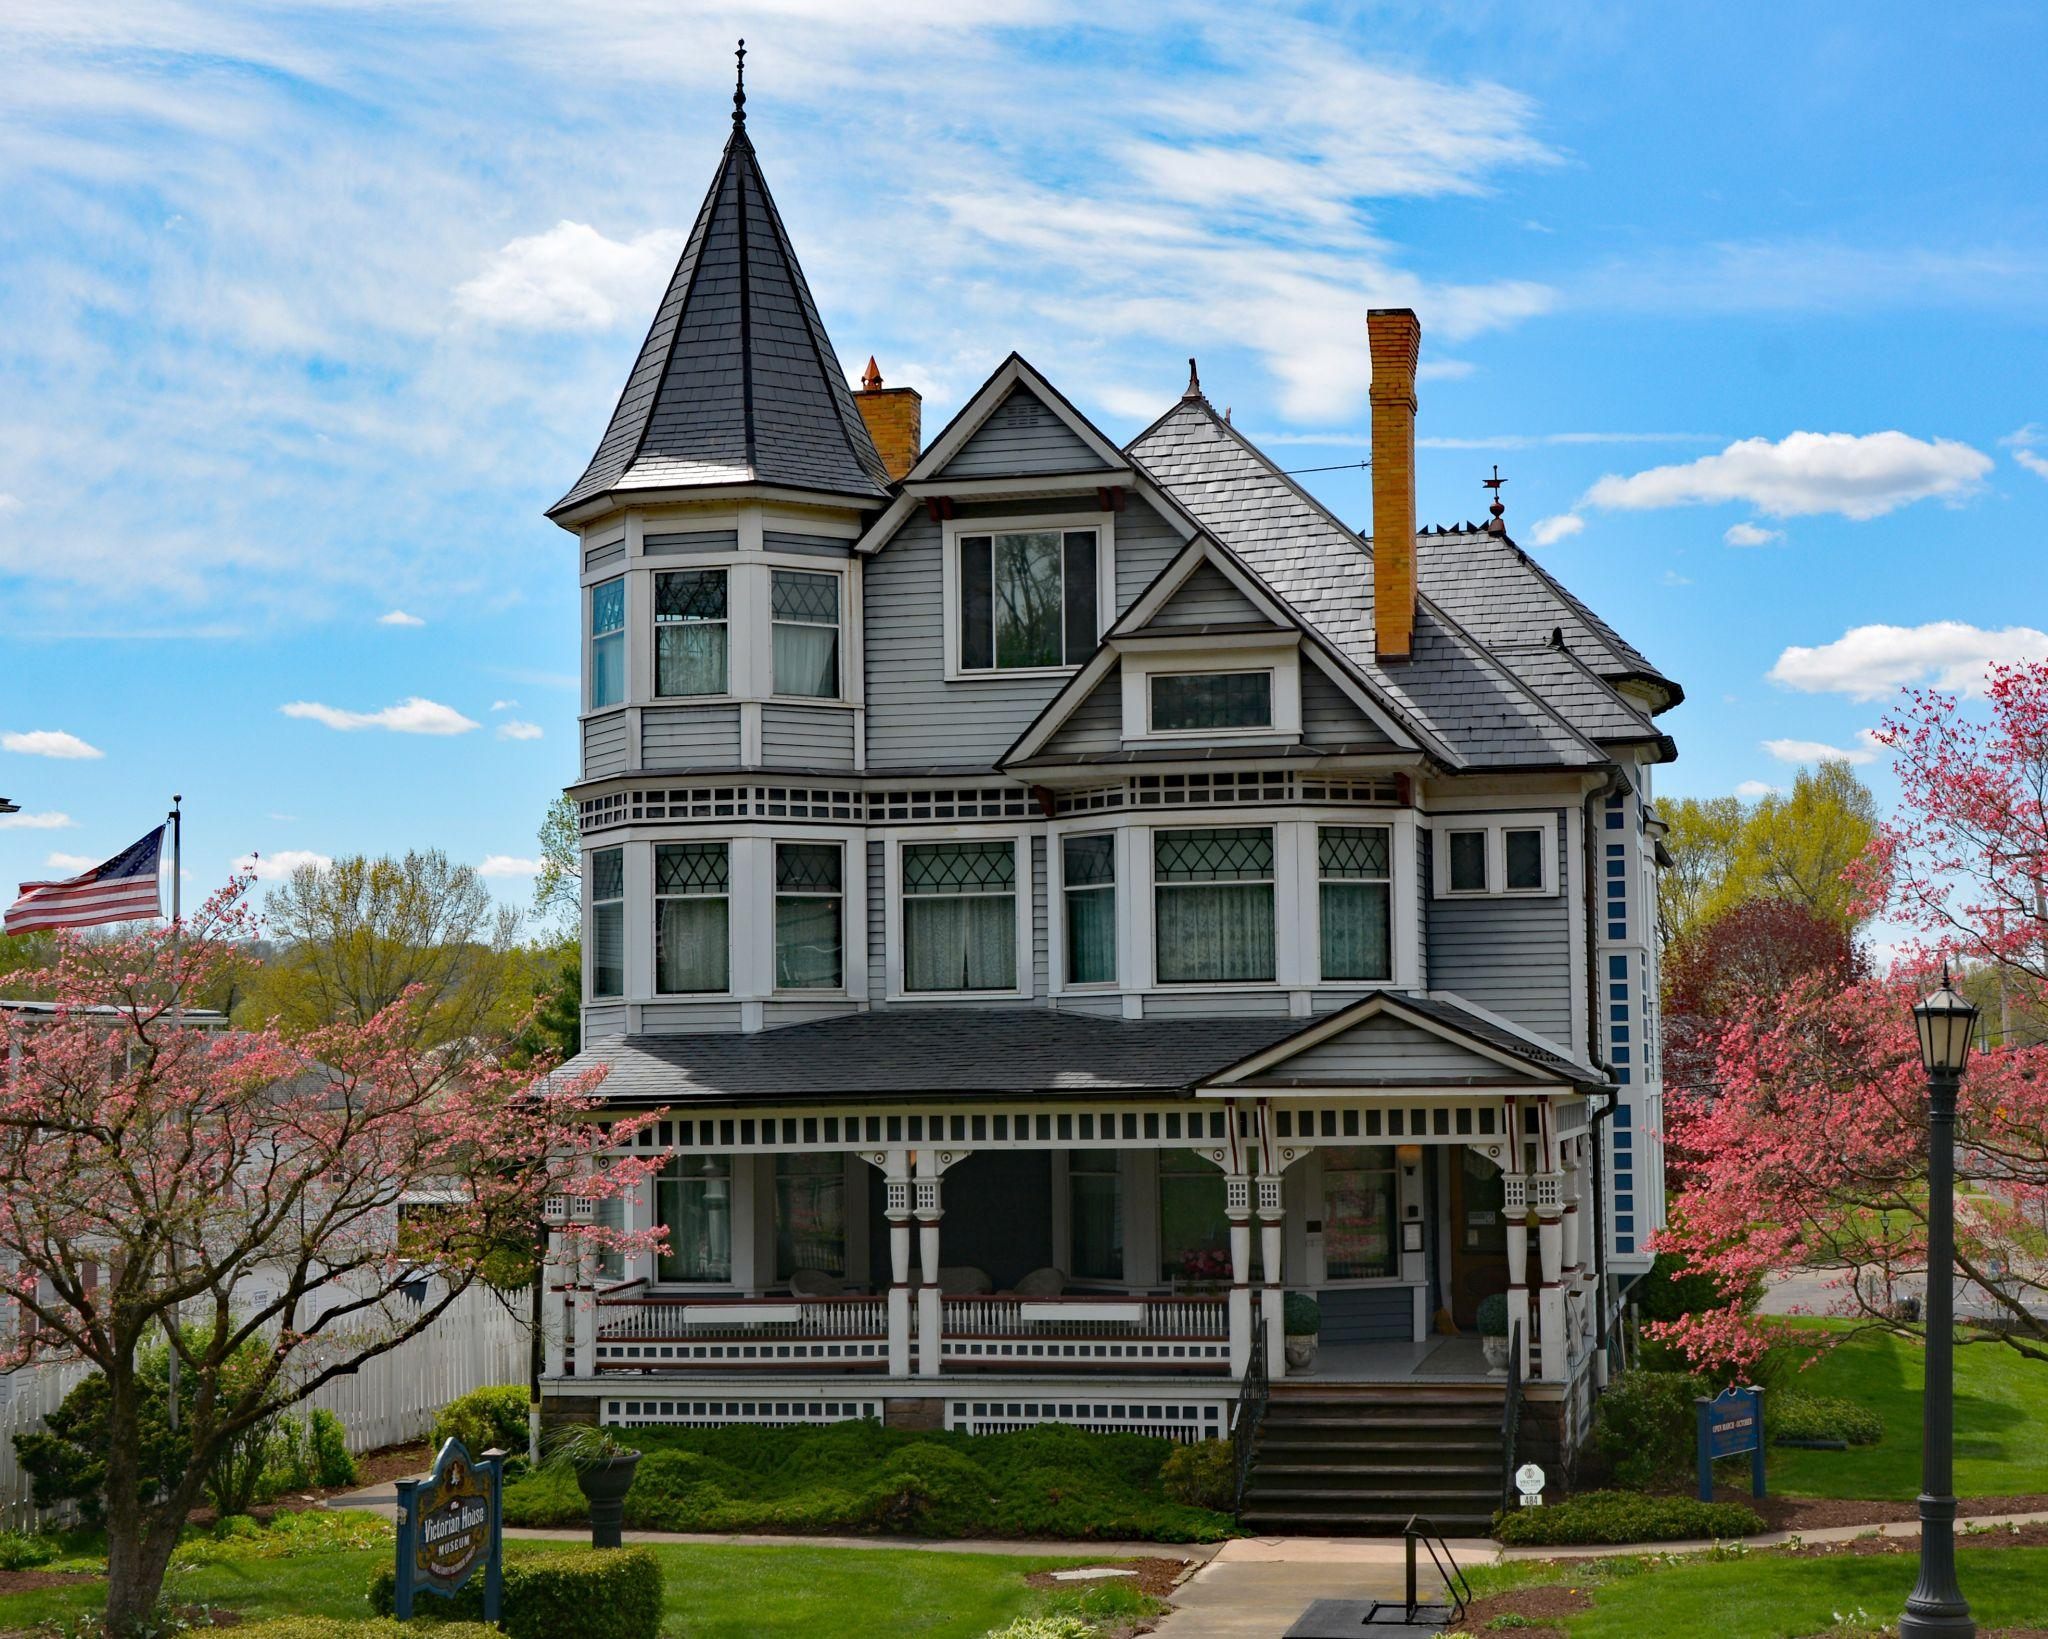 FULL SEASONAL HOURS BEGIN VICTORIAN HOUSE MUSEUM and MILLERSBURG GLASS MUSEUM